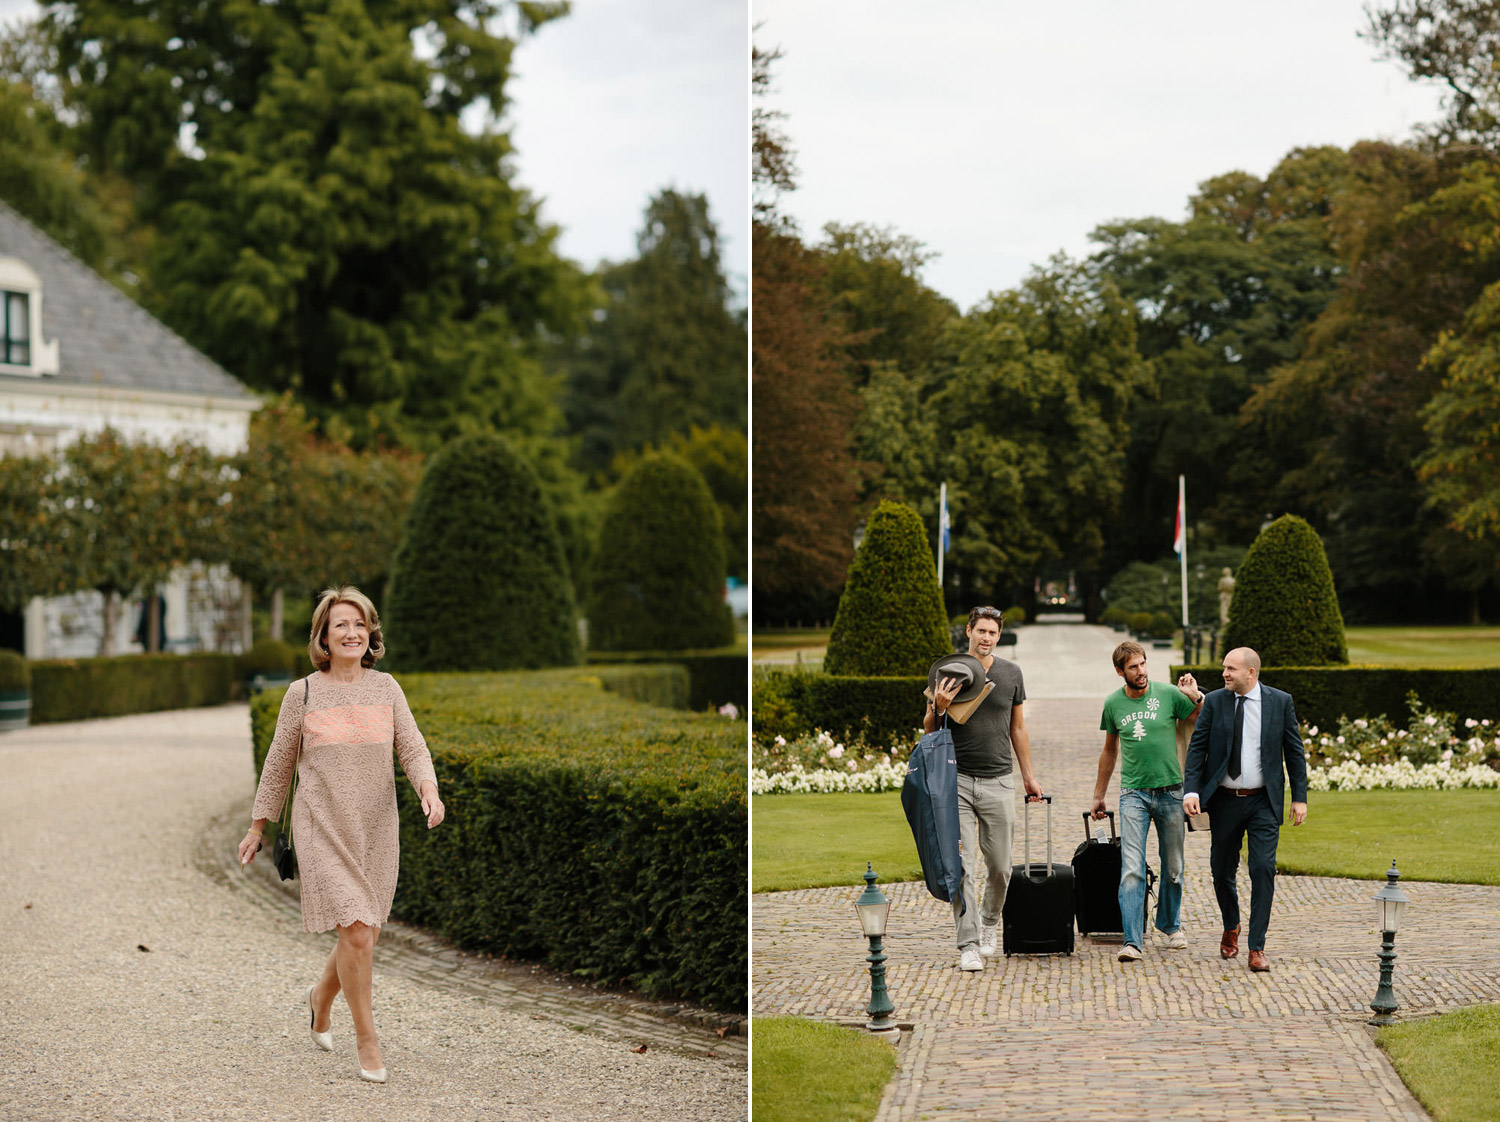 Weddings guests arriving at Kasteel Engelenburg